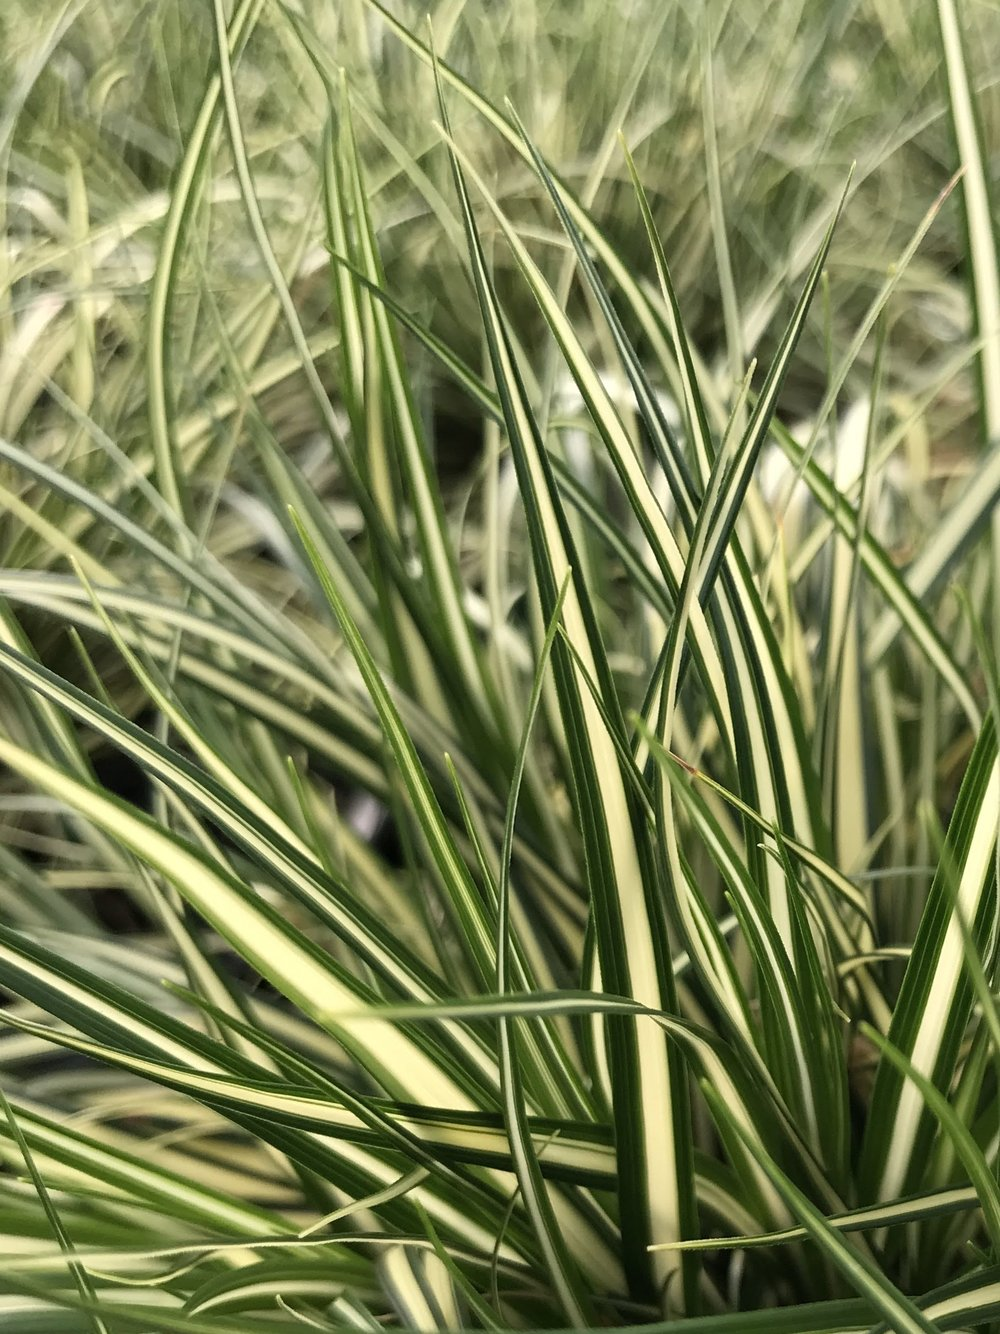 Carex oshimensis 'Evergold' 1 gallon